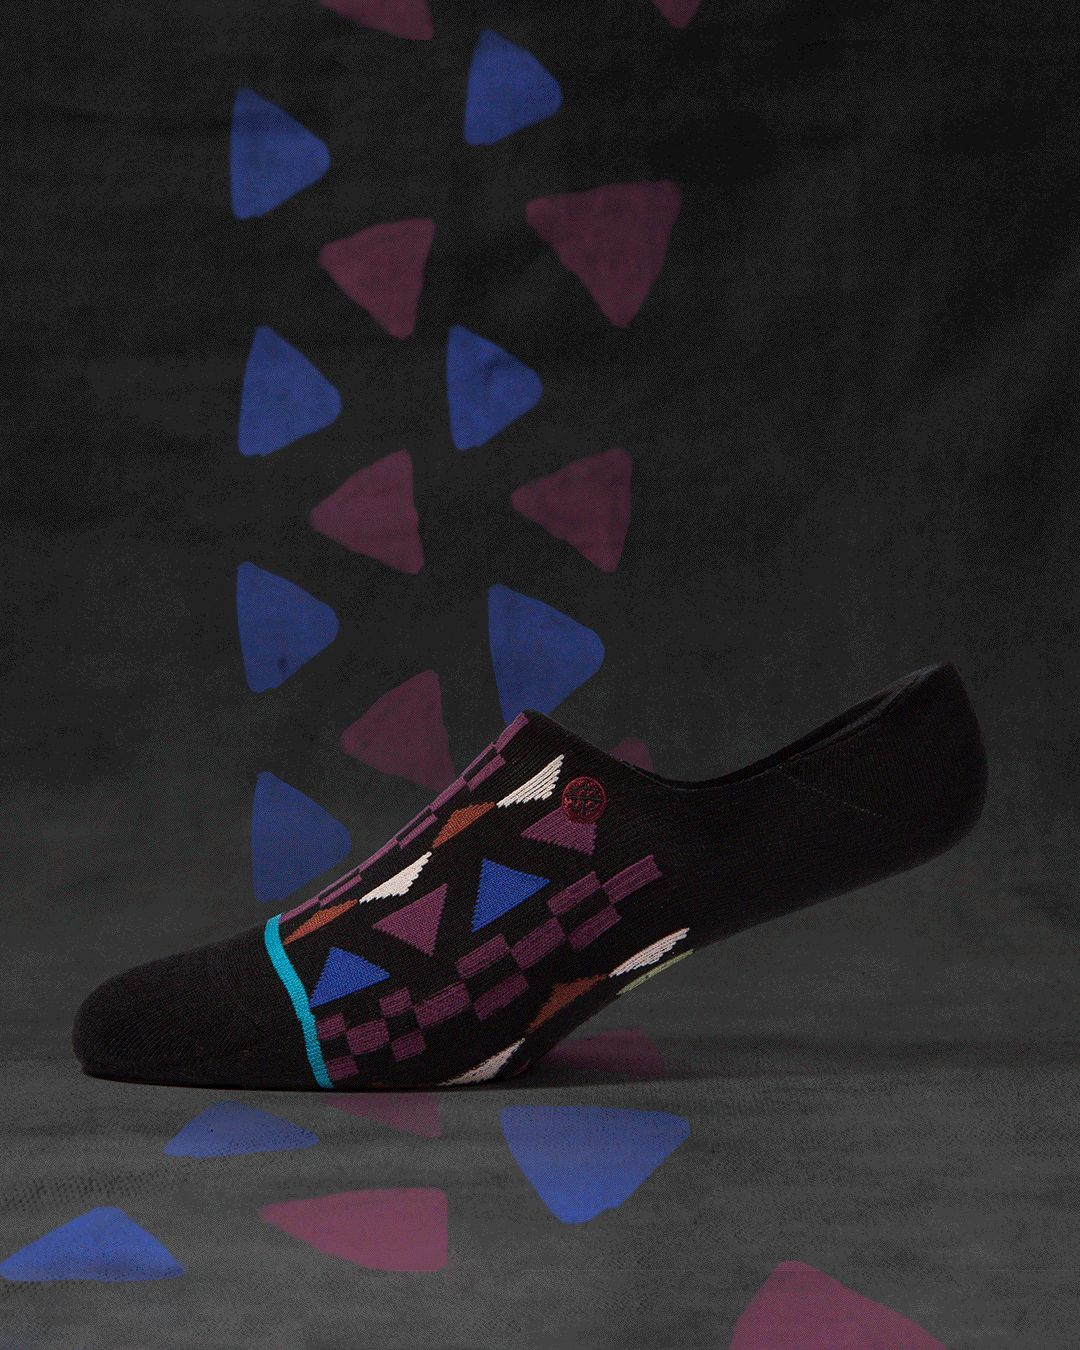 No-show Socks With Your Favorite Prints That Don't Slip